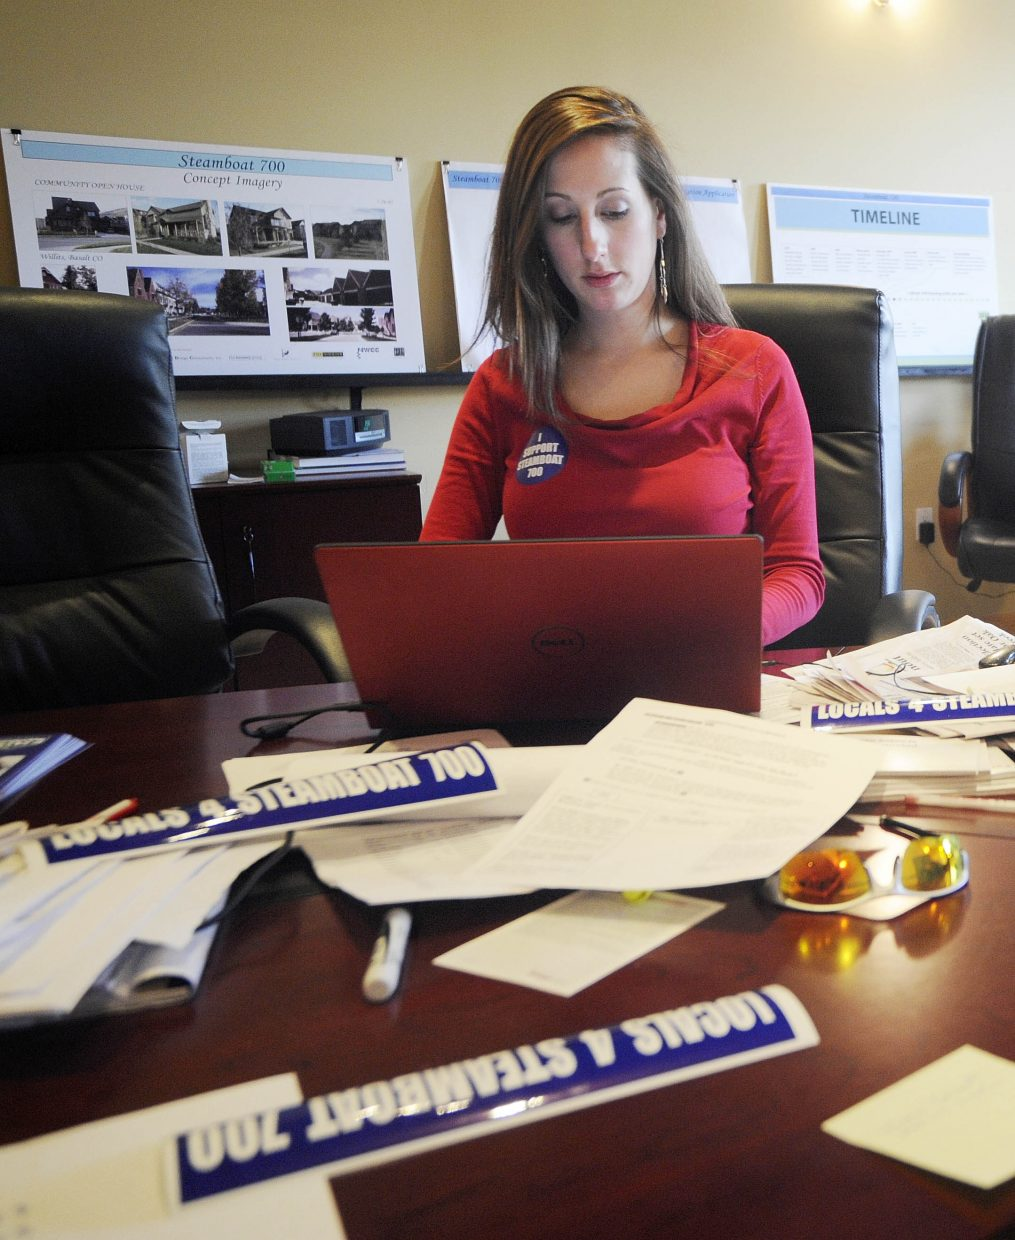 Tessa DeVault works in the Steamboat 700 office.